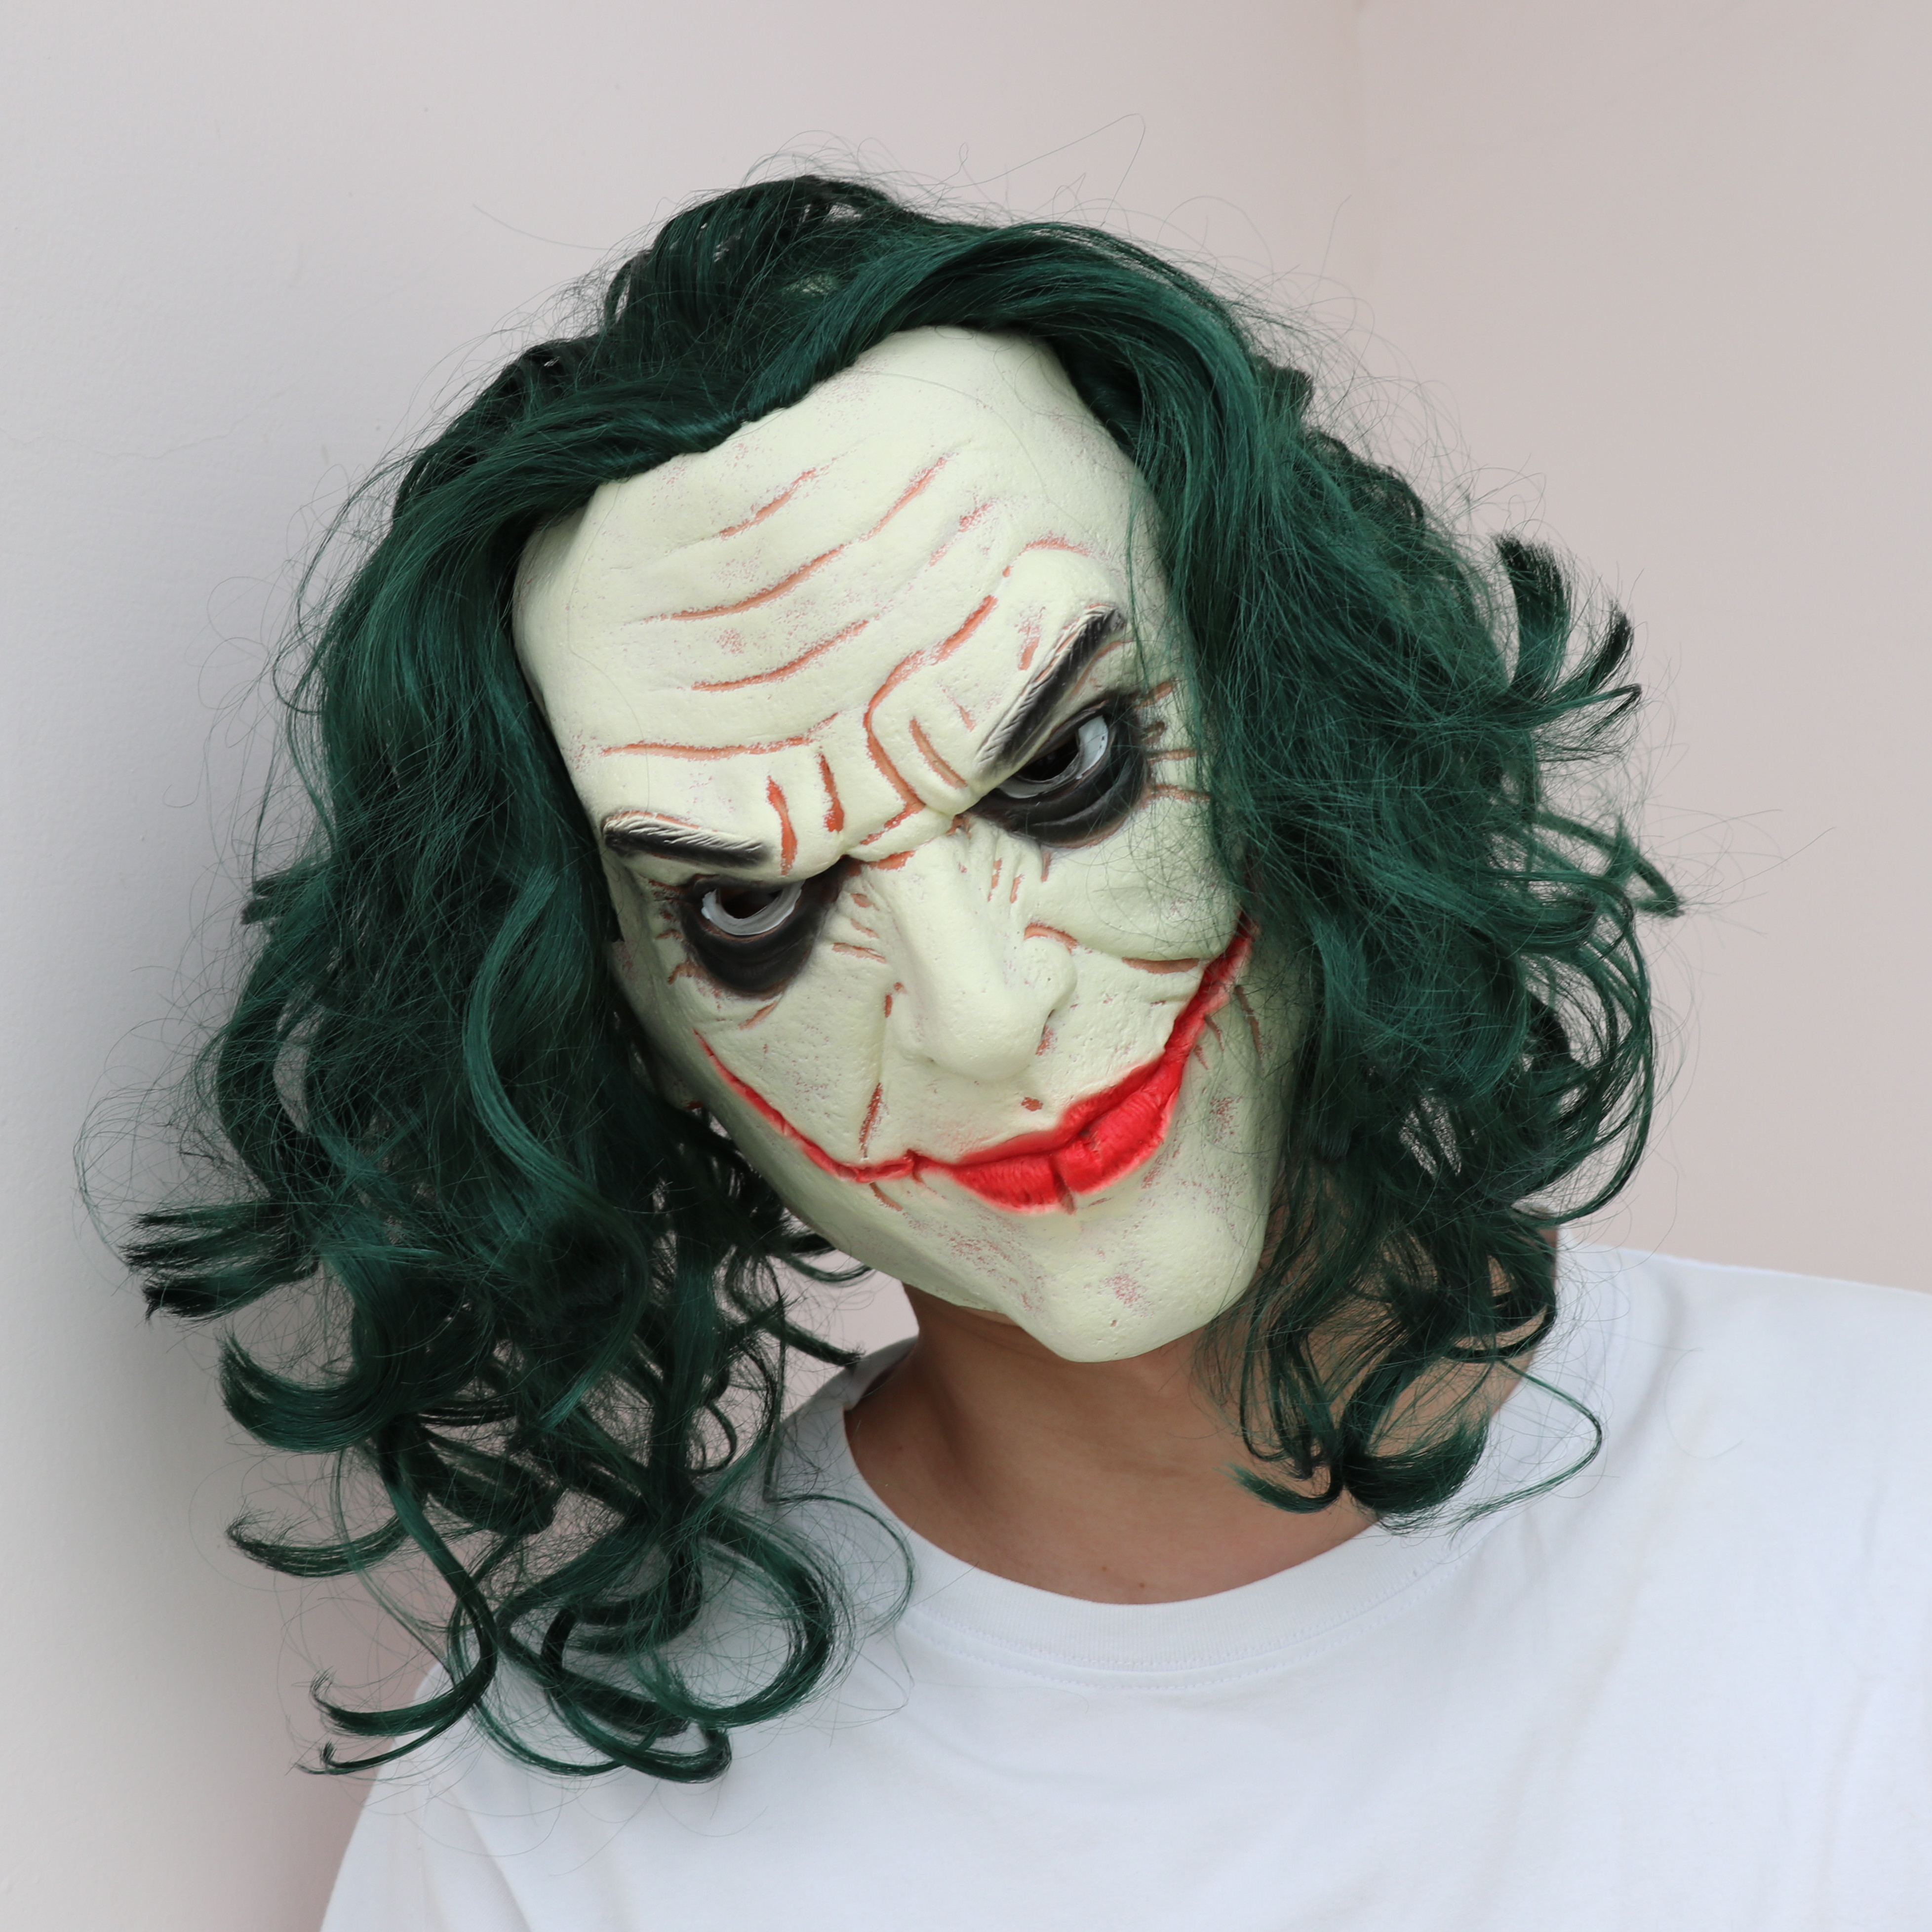 New Movie Batman Joker Mask Cosplay Costumes Props Terror Party Knight of Darkness Latex Masks Perfect Reduction Halloween Gift